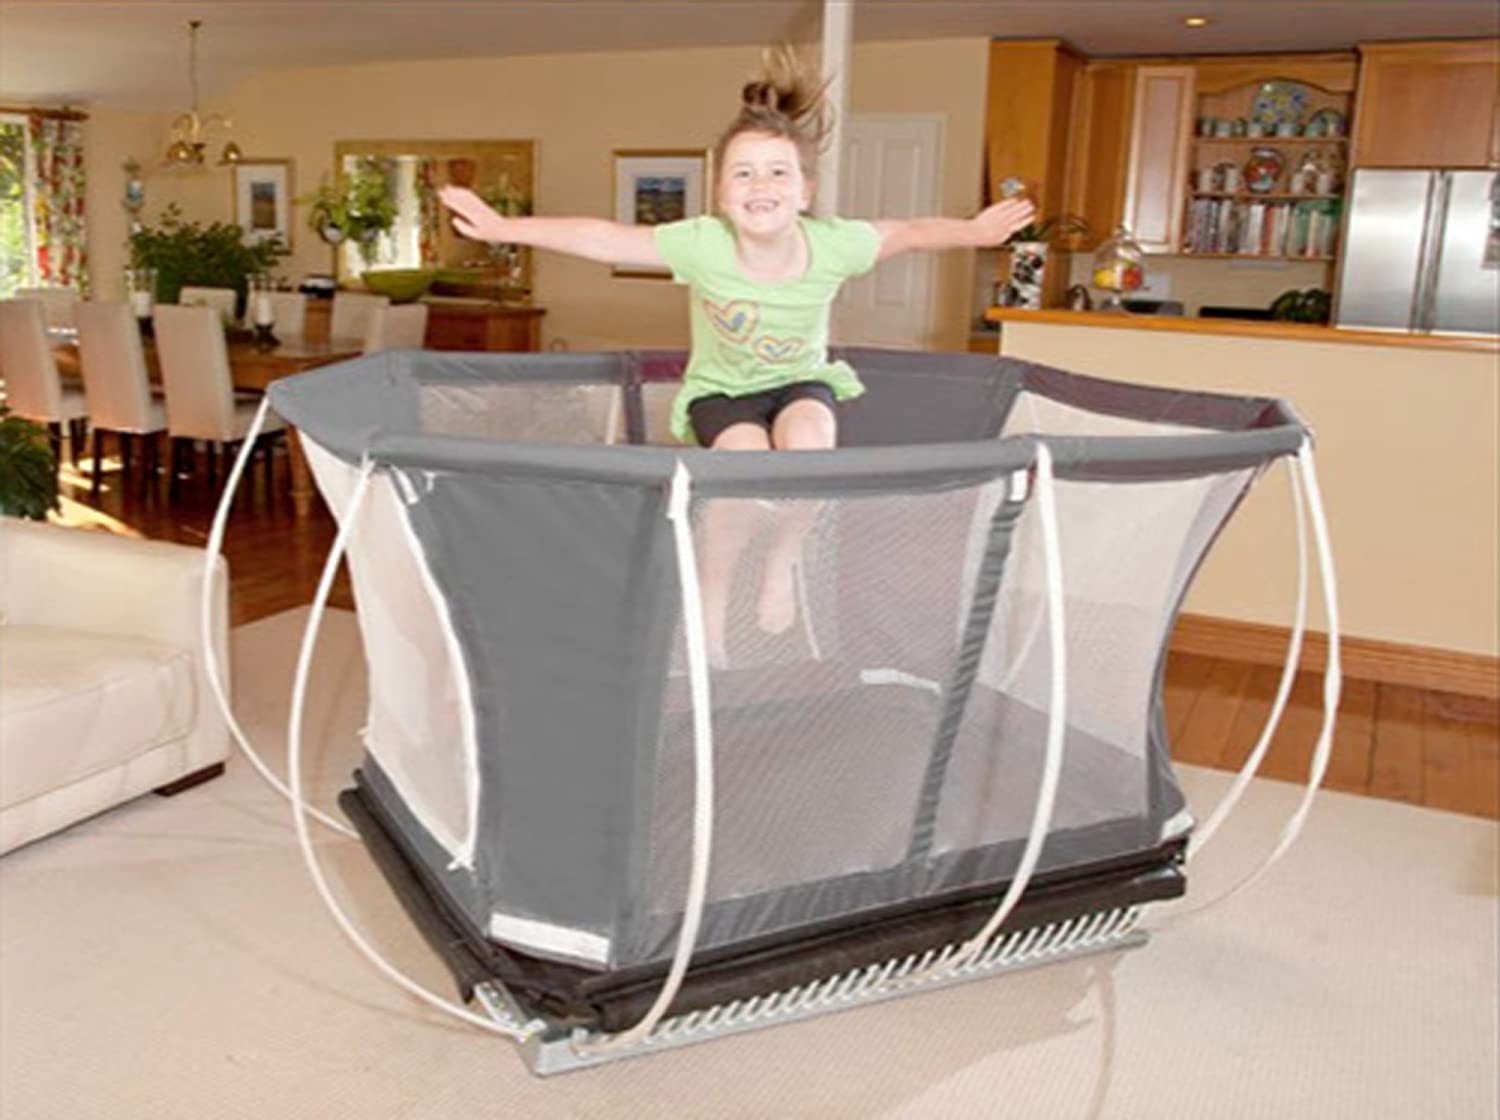 Reasons To Install Trampoline Pads Safety And Maintenance - Fitness Equipment